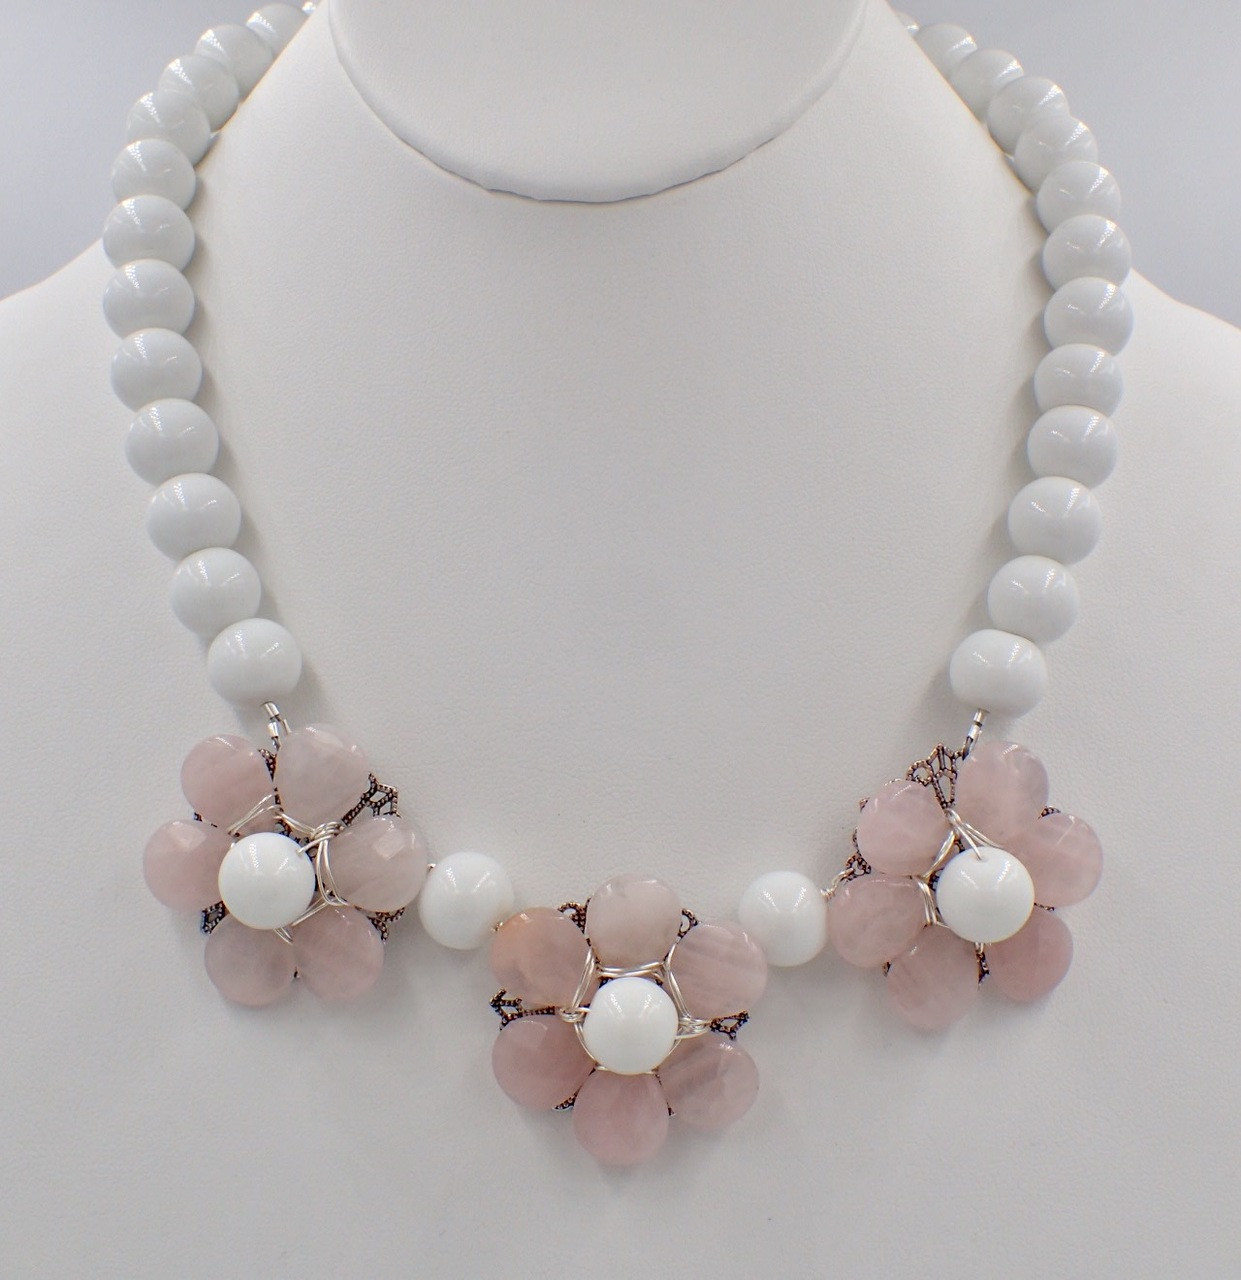 Pink & White Flower Power Necklace Kit